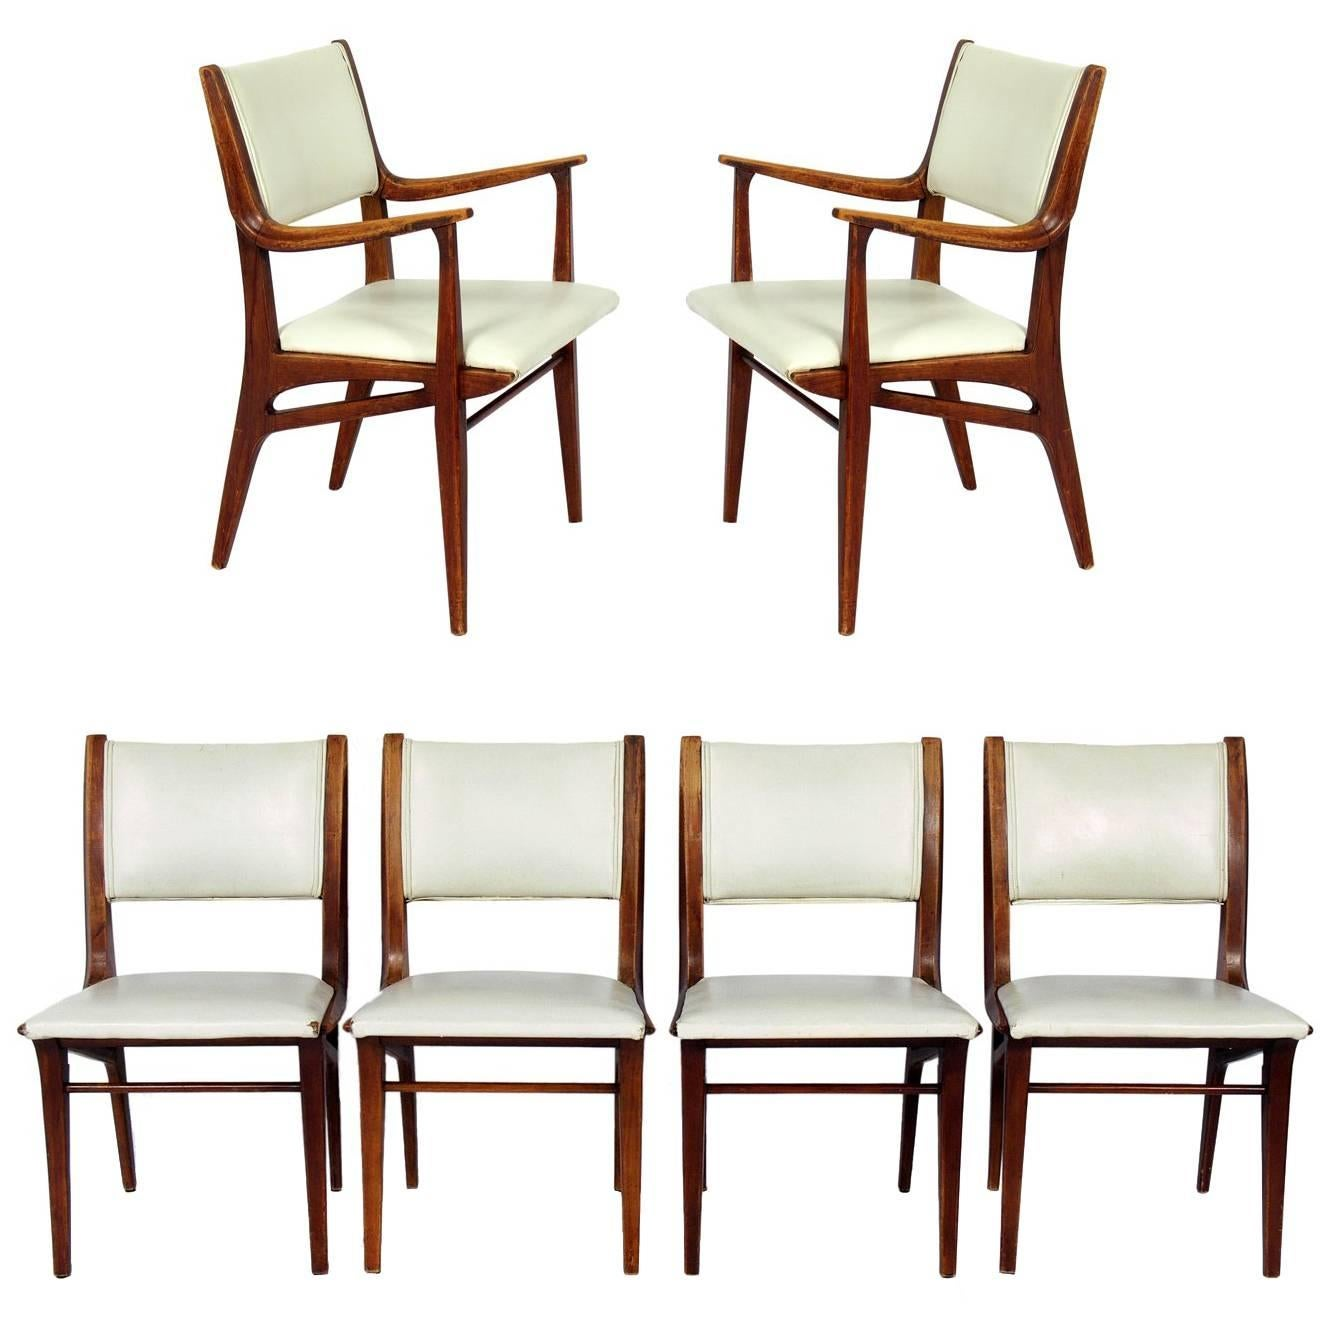 Exceptionnel Curvaceous Mid Century Modern Dining Chairs By John Van Koert For Drexel  For Sale